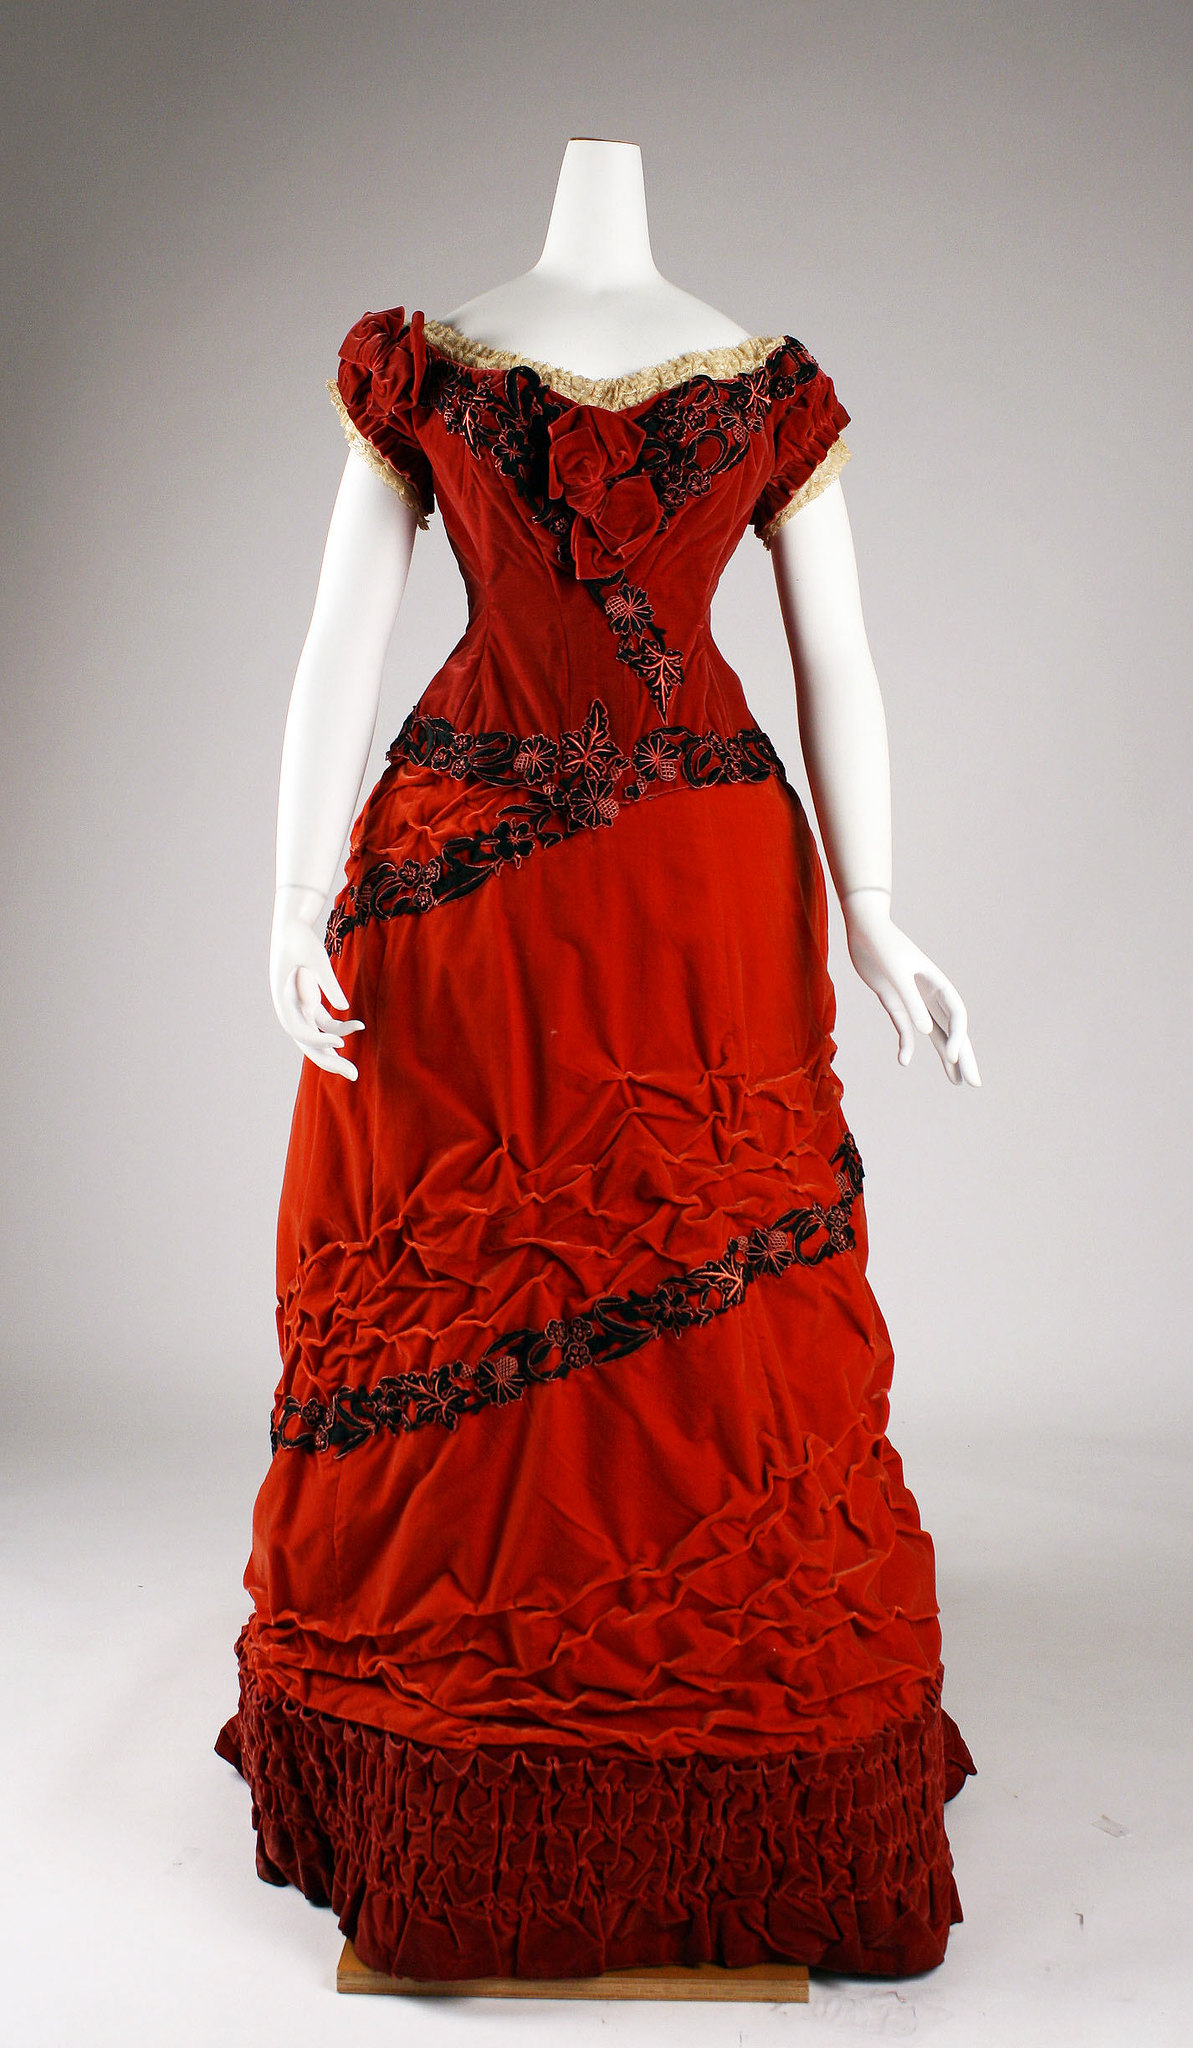 1875 Ball gown. British. Silk, cotton. metmuseum